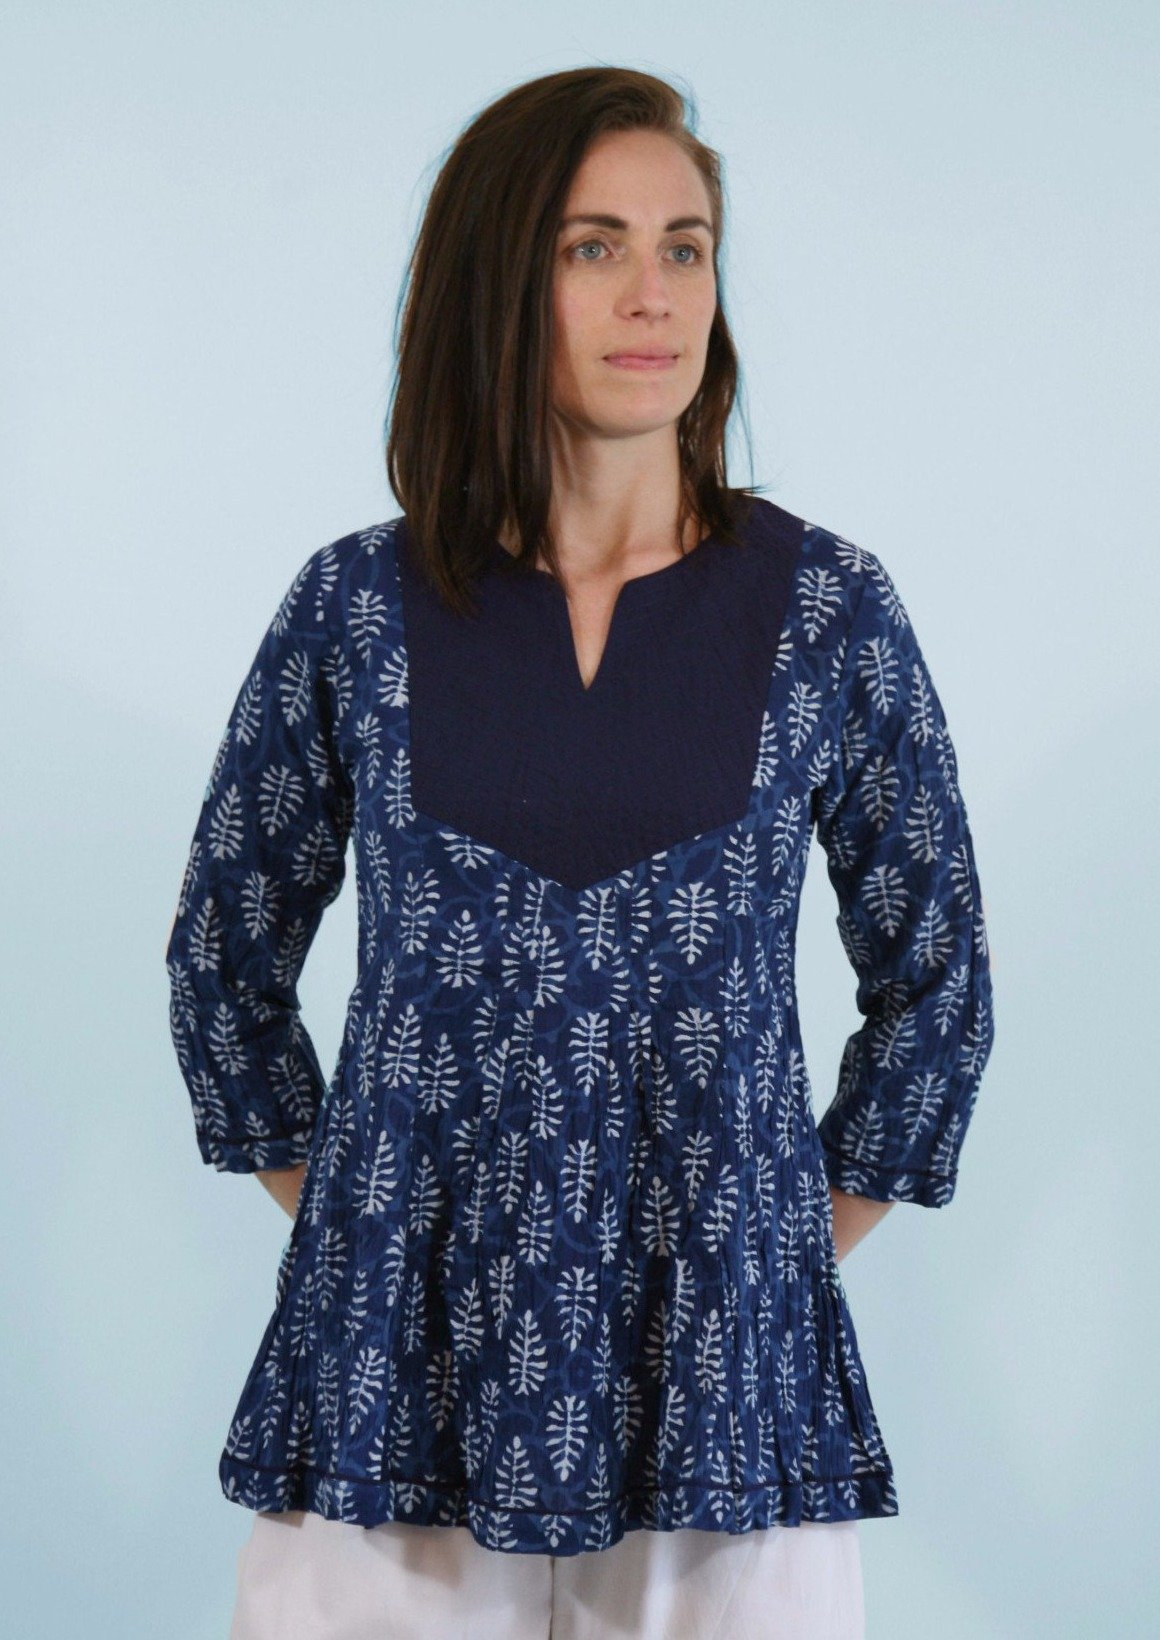 Crinkle Tunic Top in Indigo Block Print